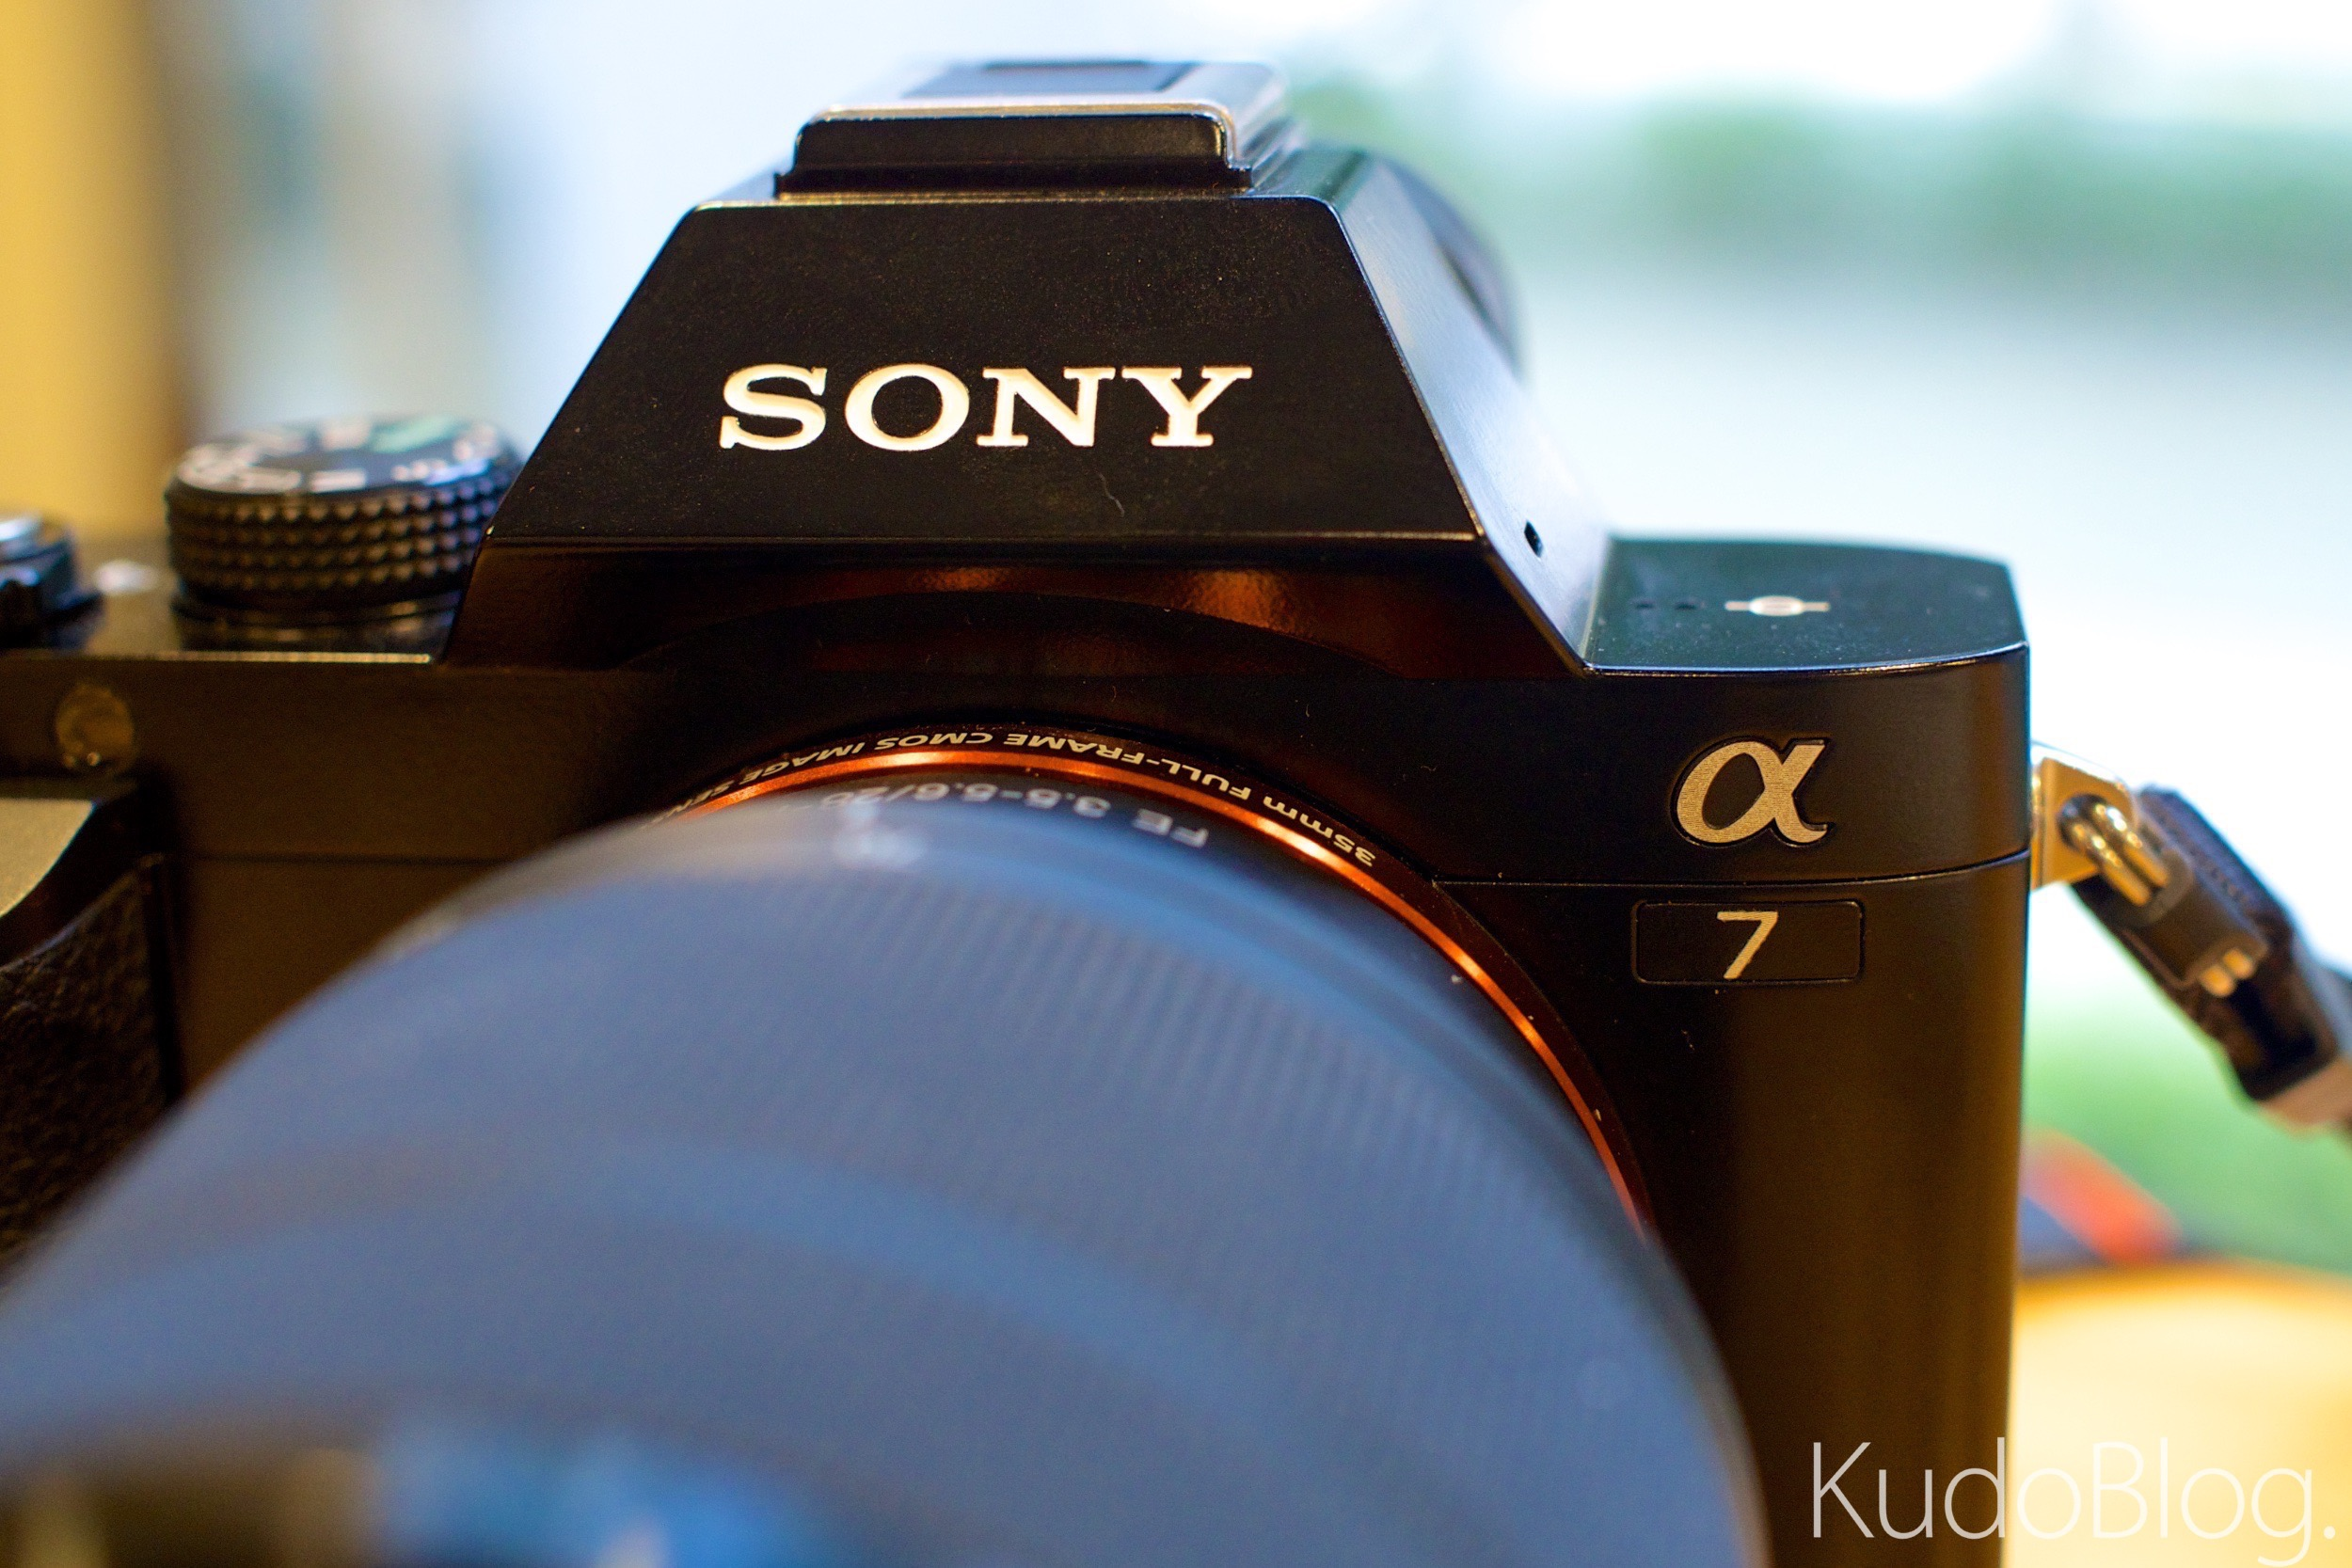 [KudoReview] Sony a7